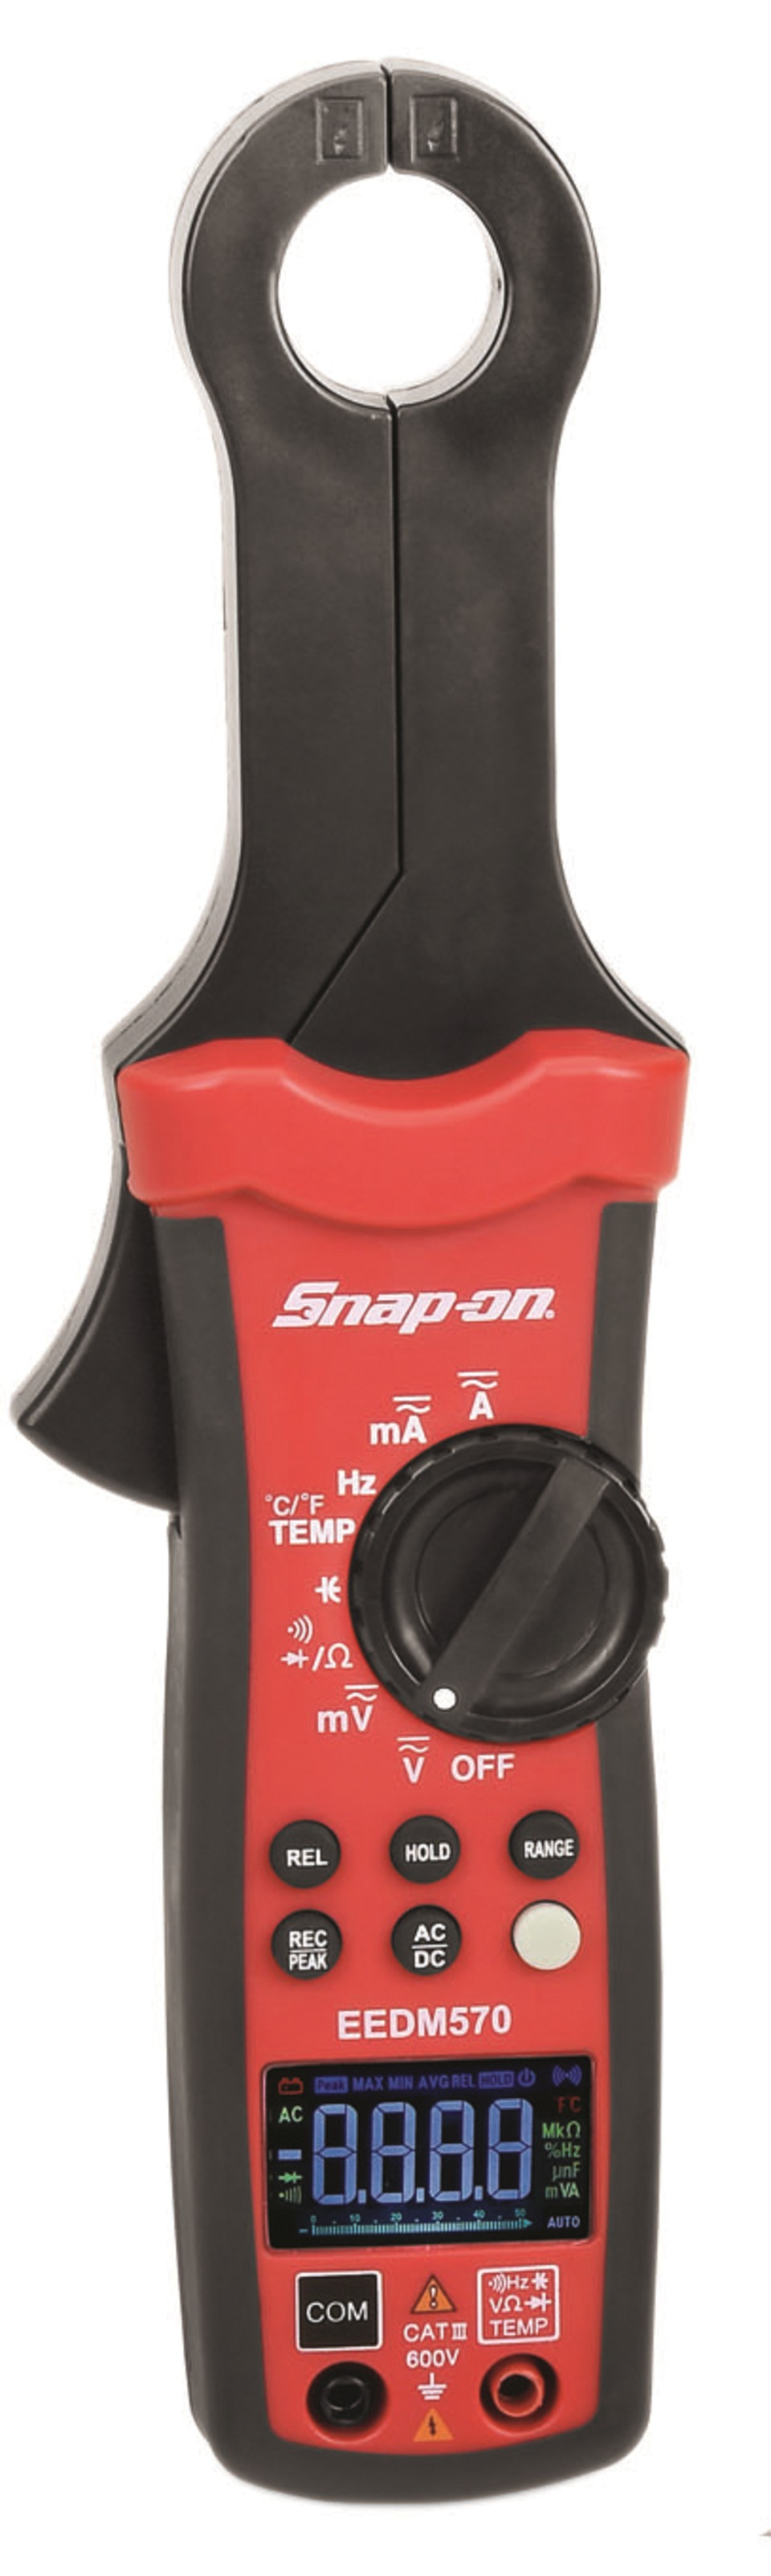 Snap On Multimeter : Snap on inc low current color digital display clamp meter